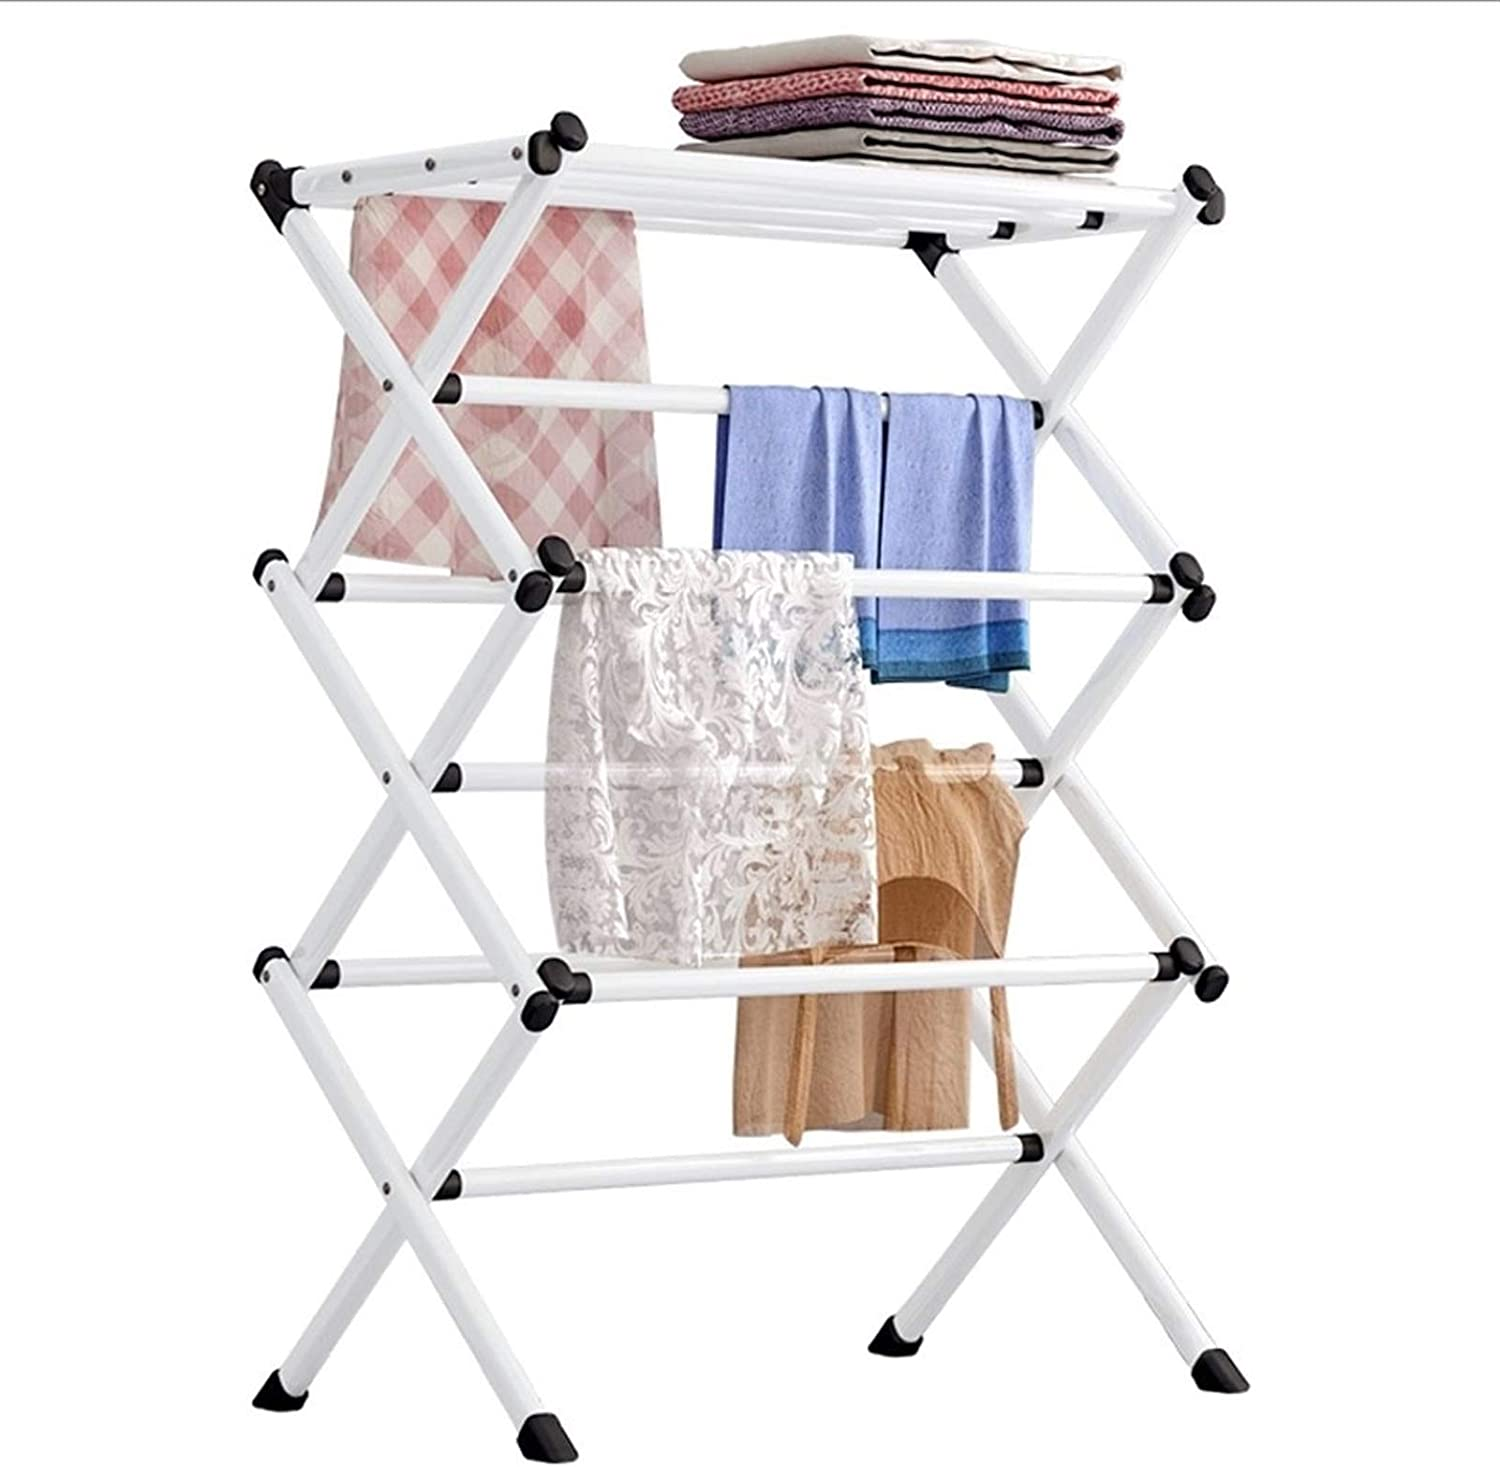 XIAOQIU Clothes Drying Limited Special Price Rack Laundry Foldable Super sale for